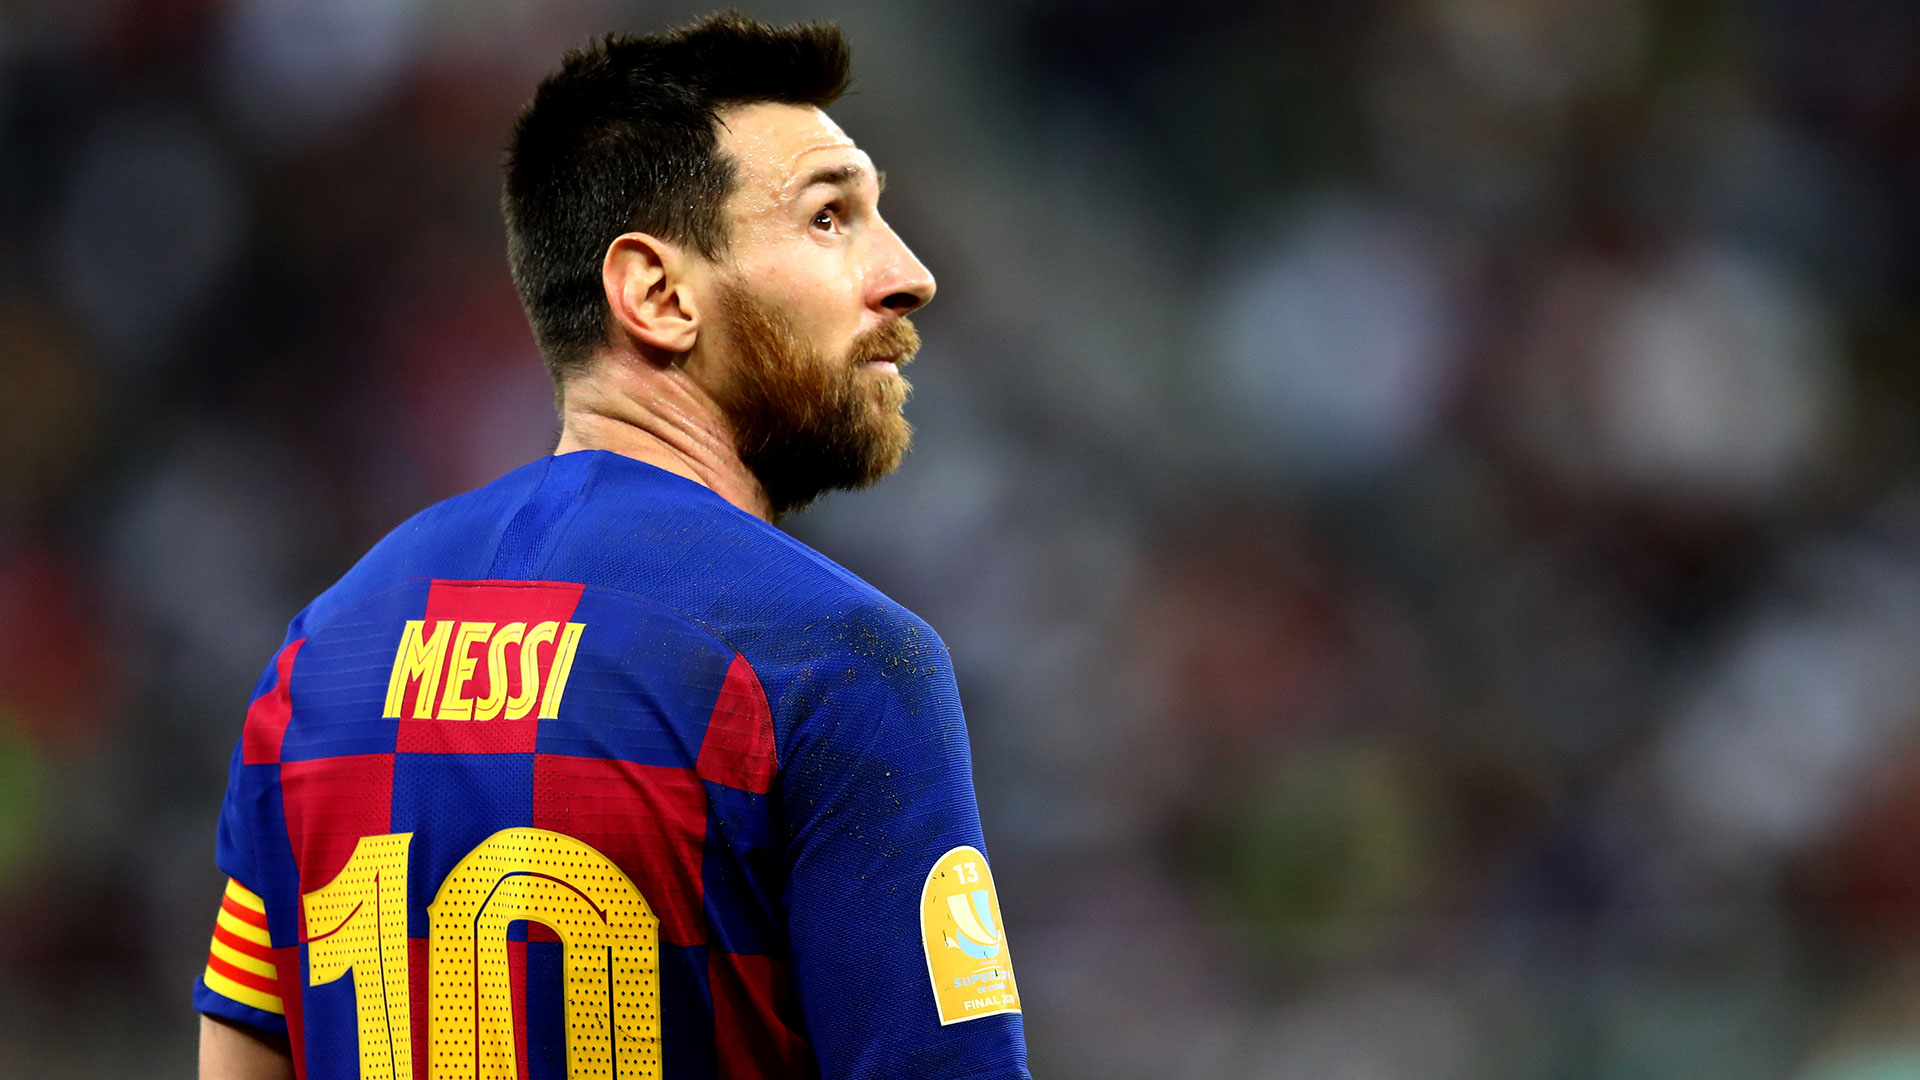 Lionel Messi did not attend a pre-season medical with FC Barcelona on Sunday, a Barca club source has confirmed This is the last latest development, following his shock announcement on Tuesday that he wants to leave the club. Reuters footage showed players arriving for coronavirus tests on Sunday morning and Messi did not appear. He […]